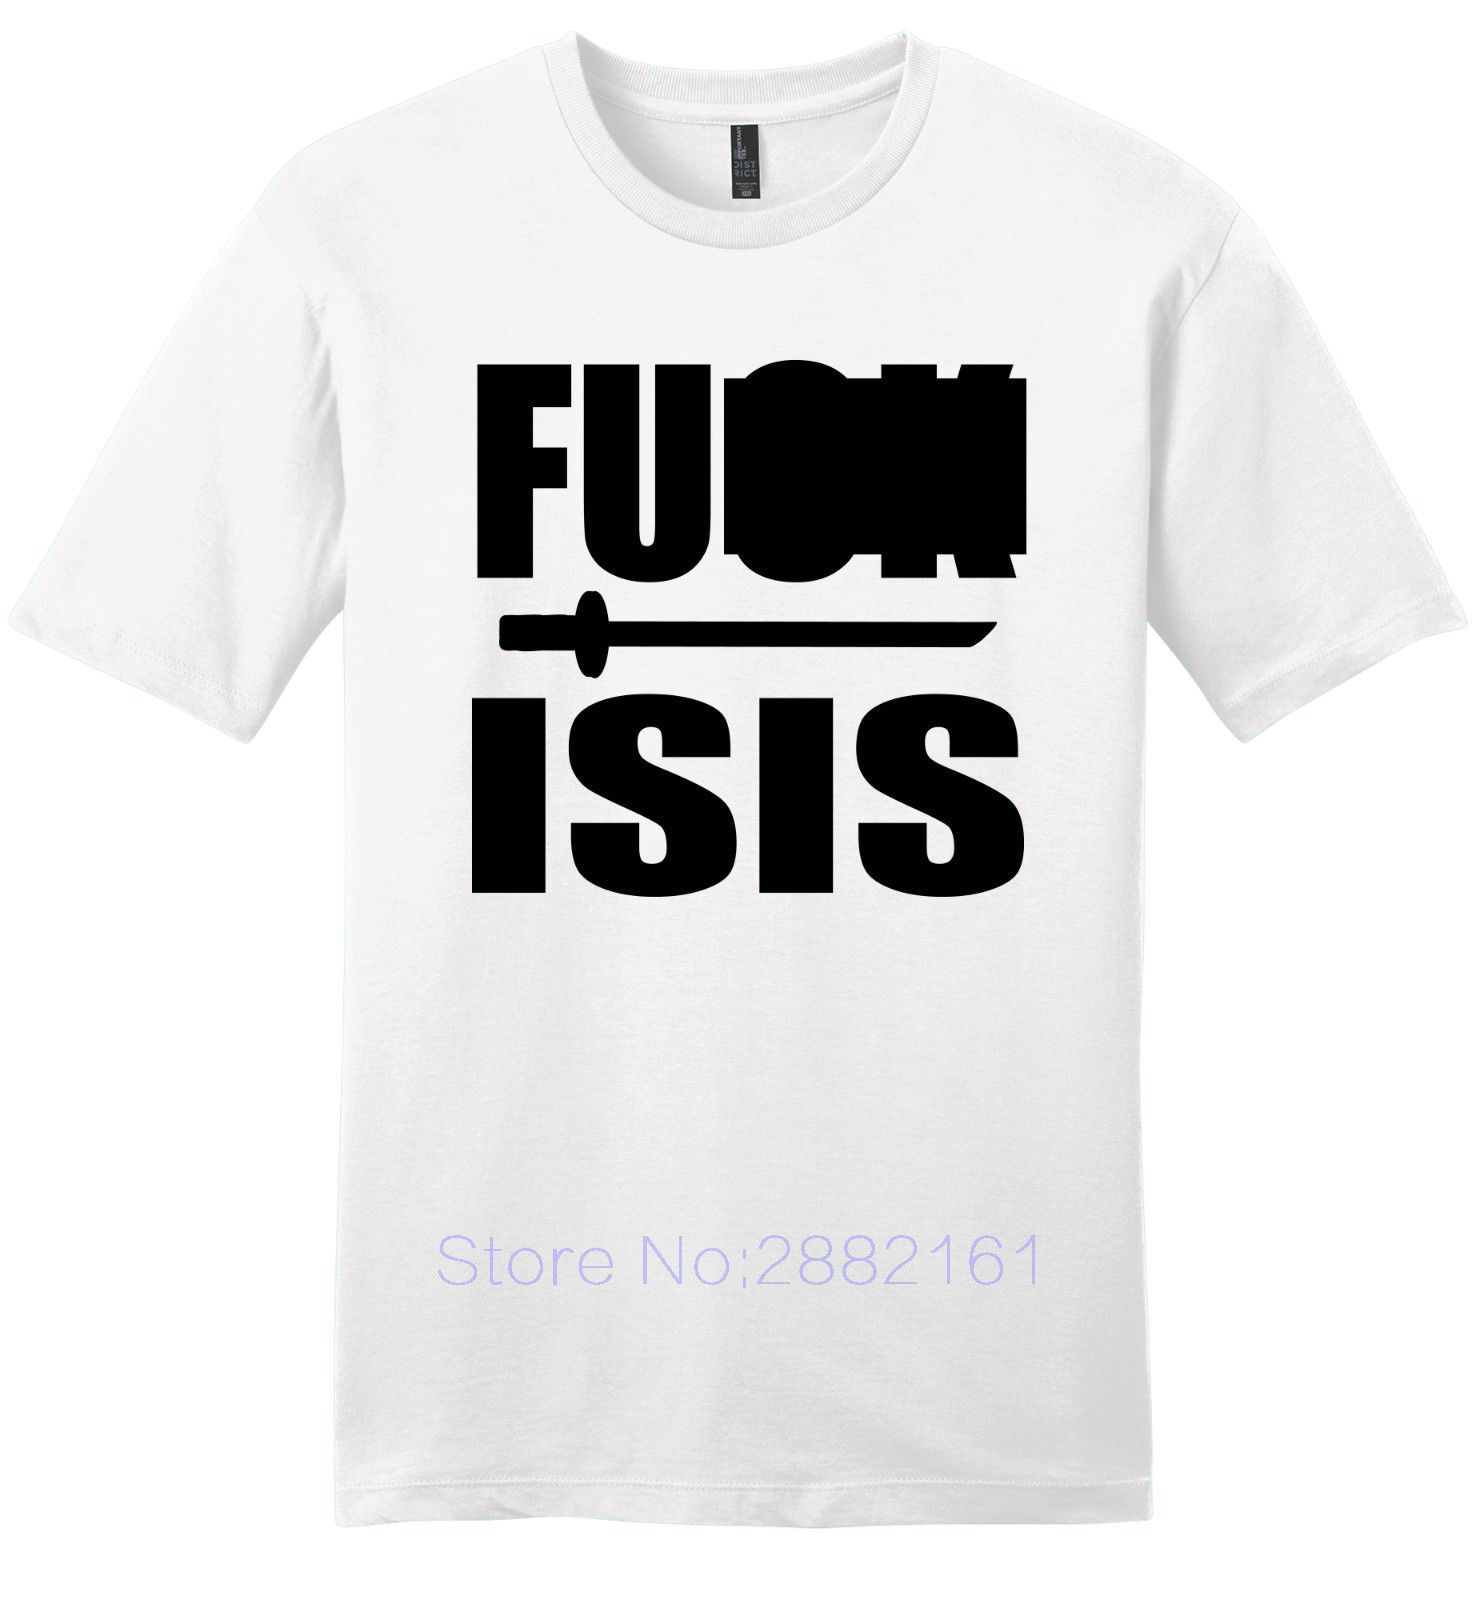 Design t shirt muslim - 2017 New Fashion Men Sf Isis Isis Mens T Shirt Anti Anti Terorisme Berita Politik Islam Muslim Z2